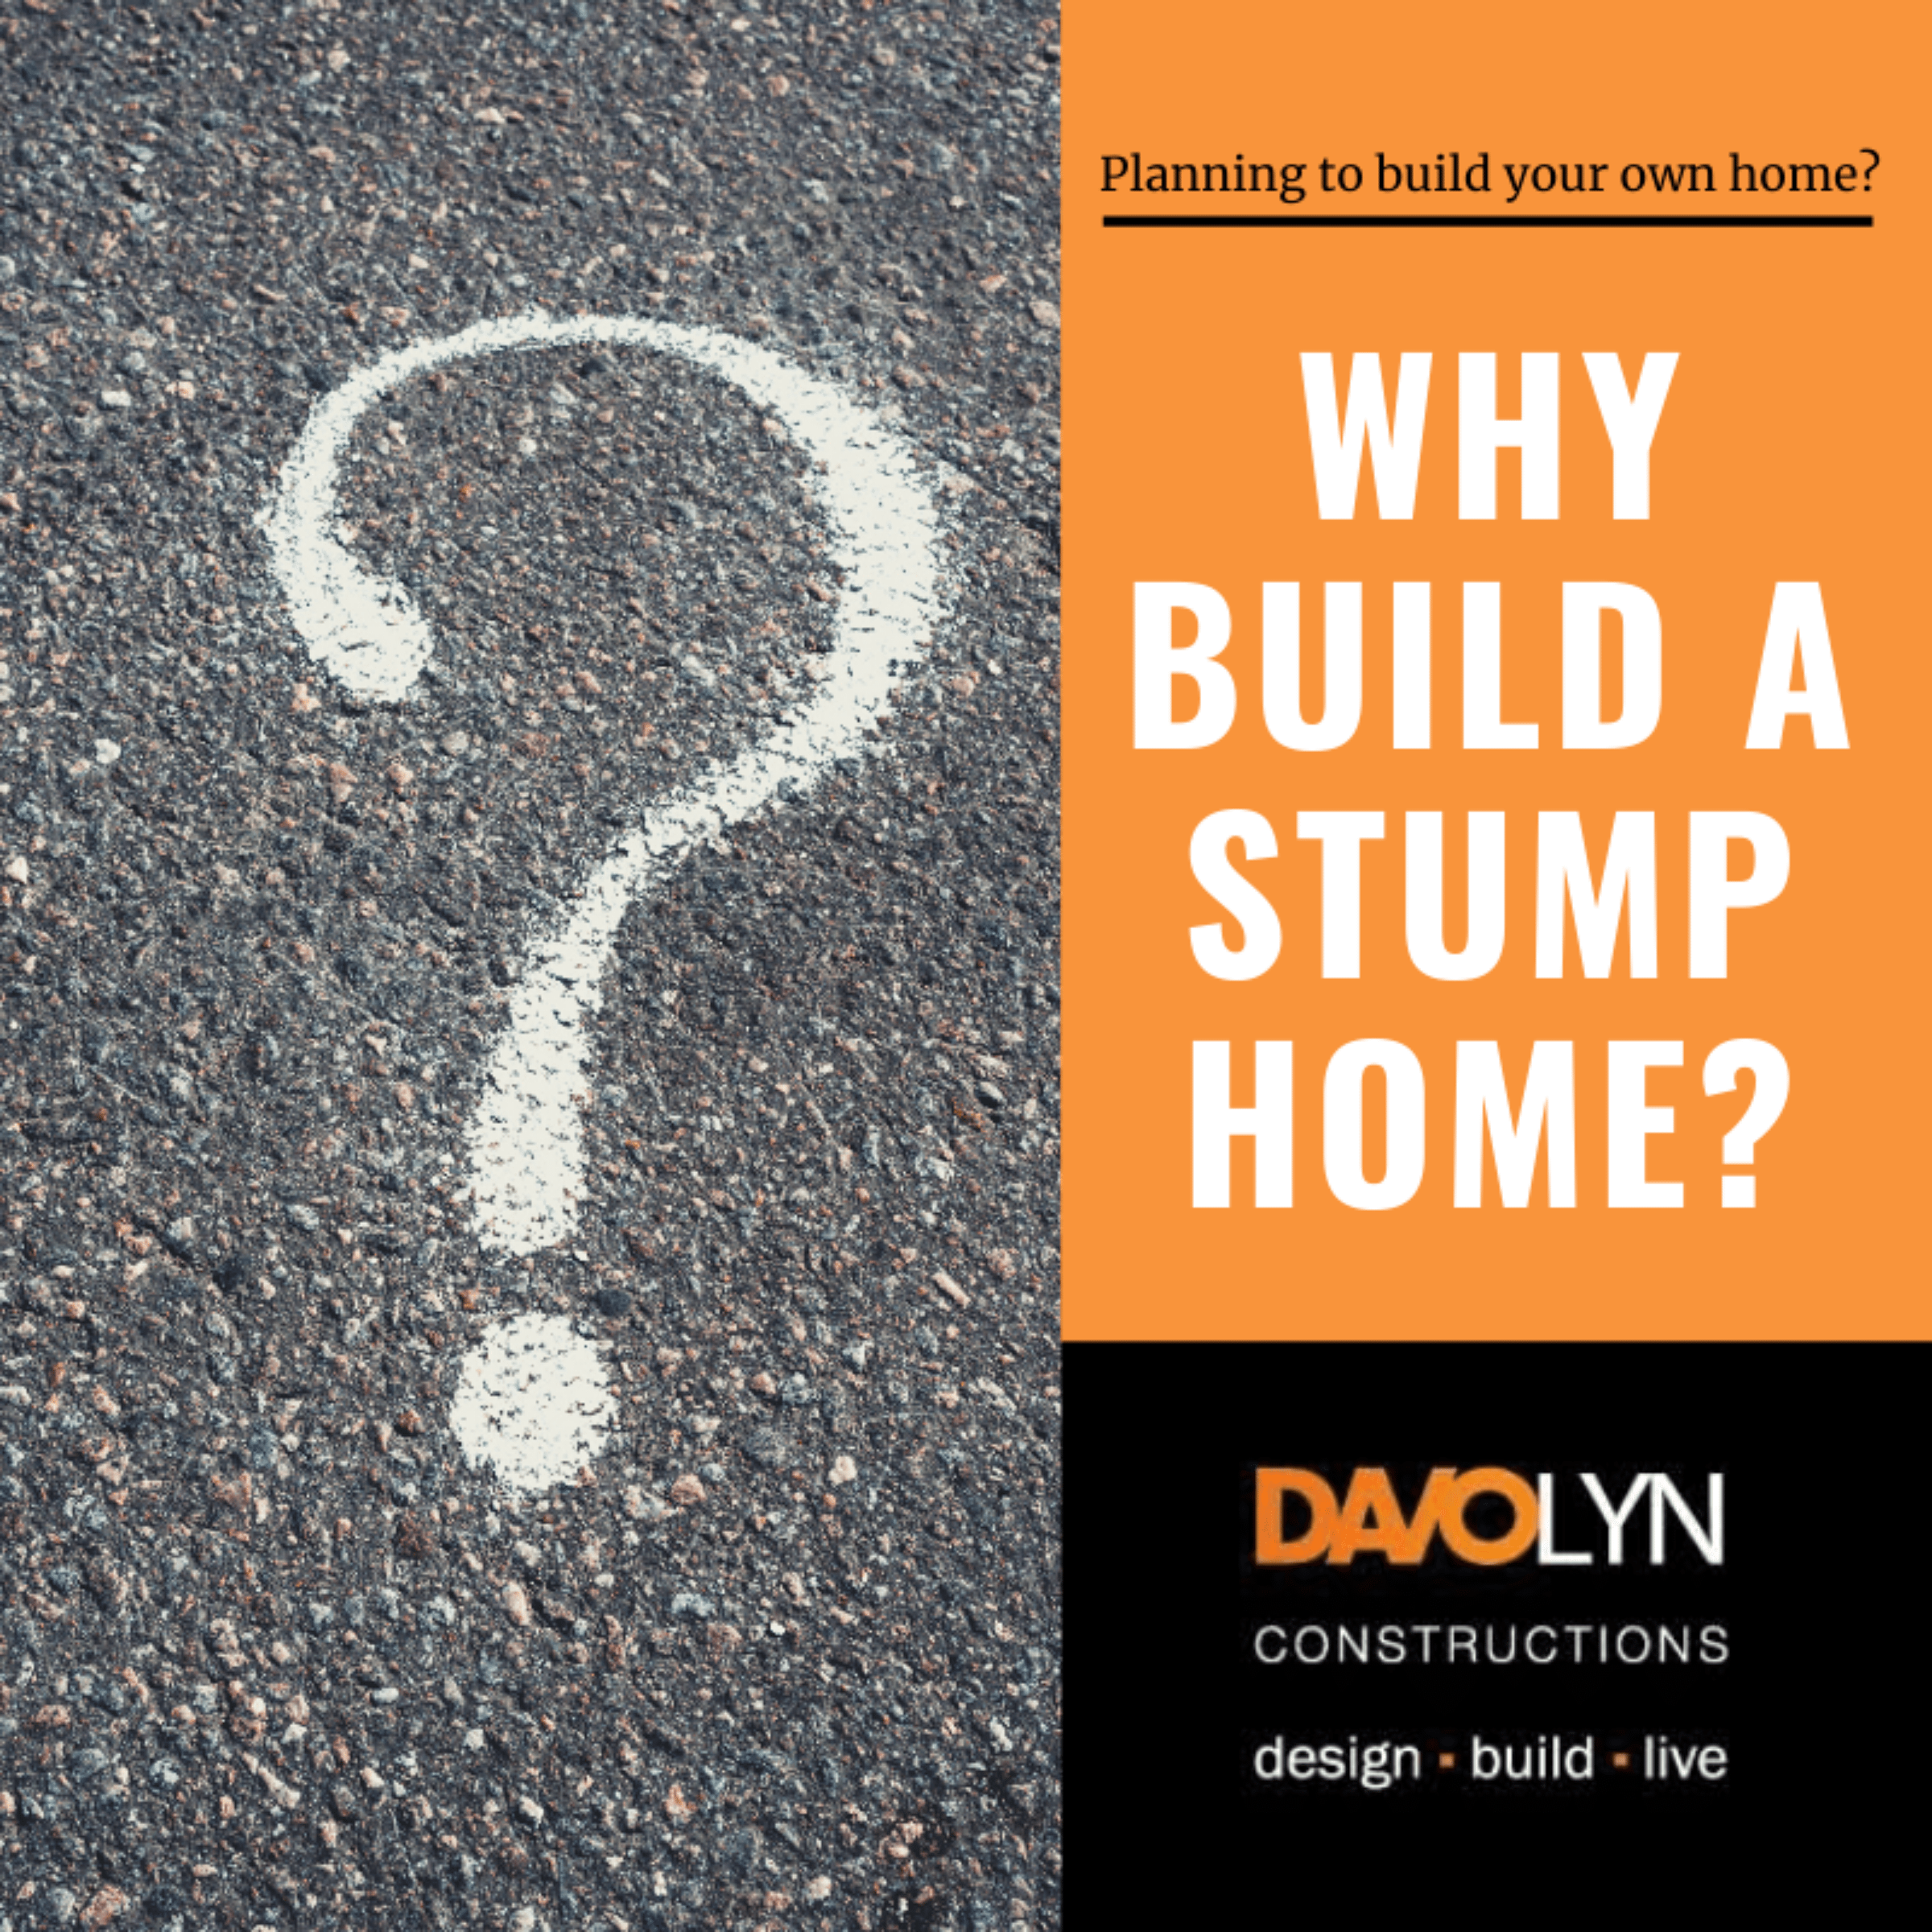 Why Build a Stump Home?